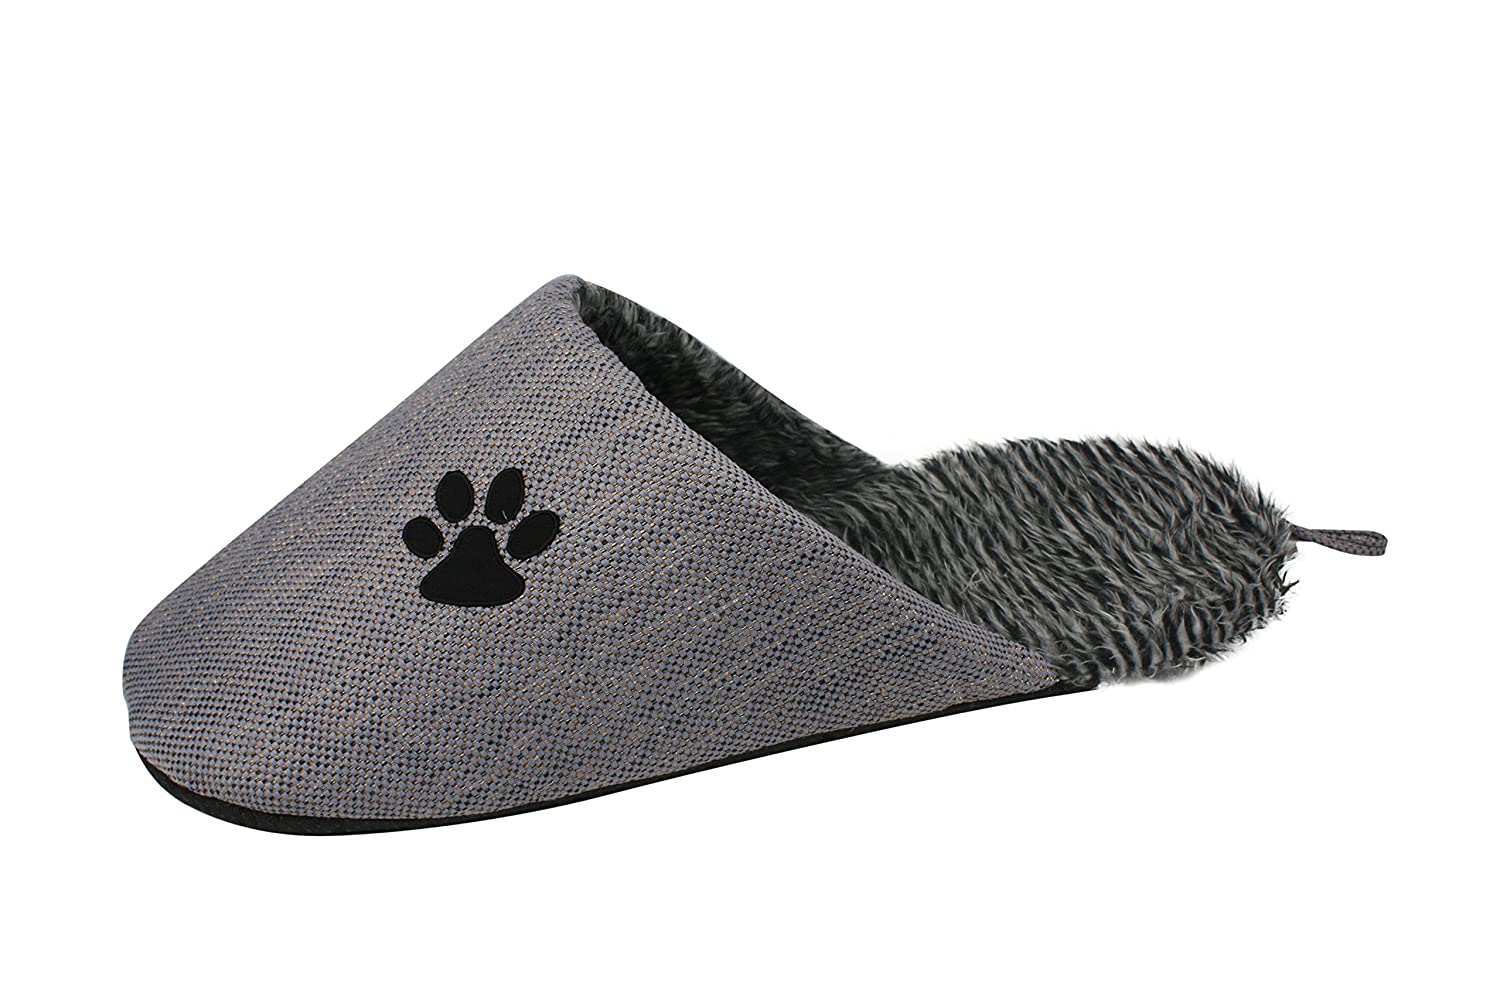 Grey One Size Grey One Size PET LIFE 'Slip-On' Fashion Designer Polar Fleece Animated Slipper Pet Dog Bed House shoes, One Size, Grey